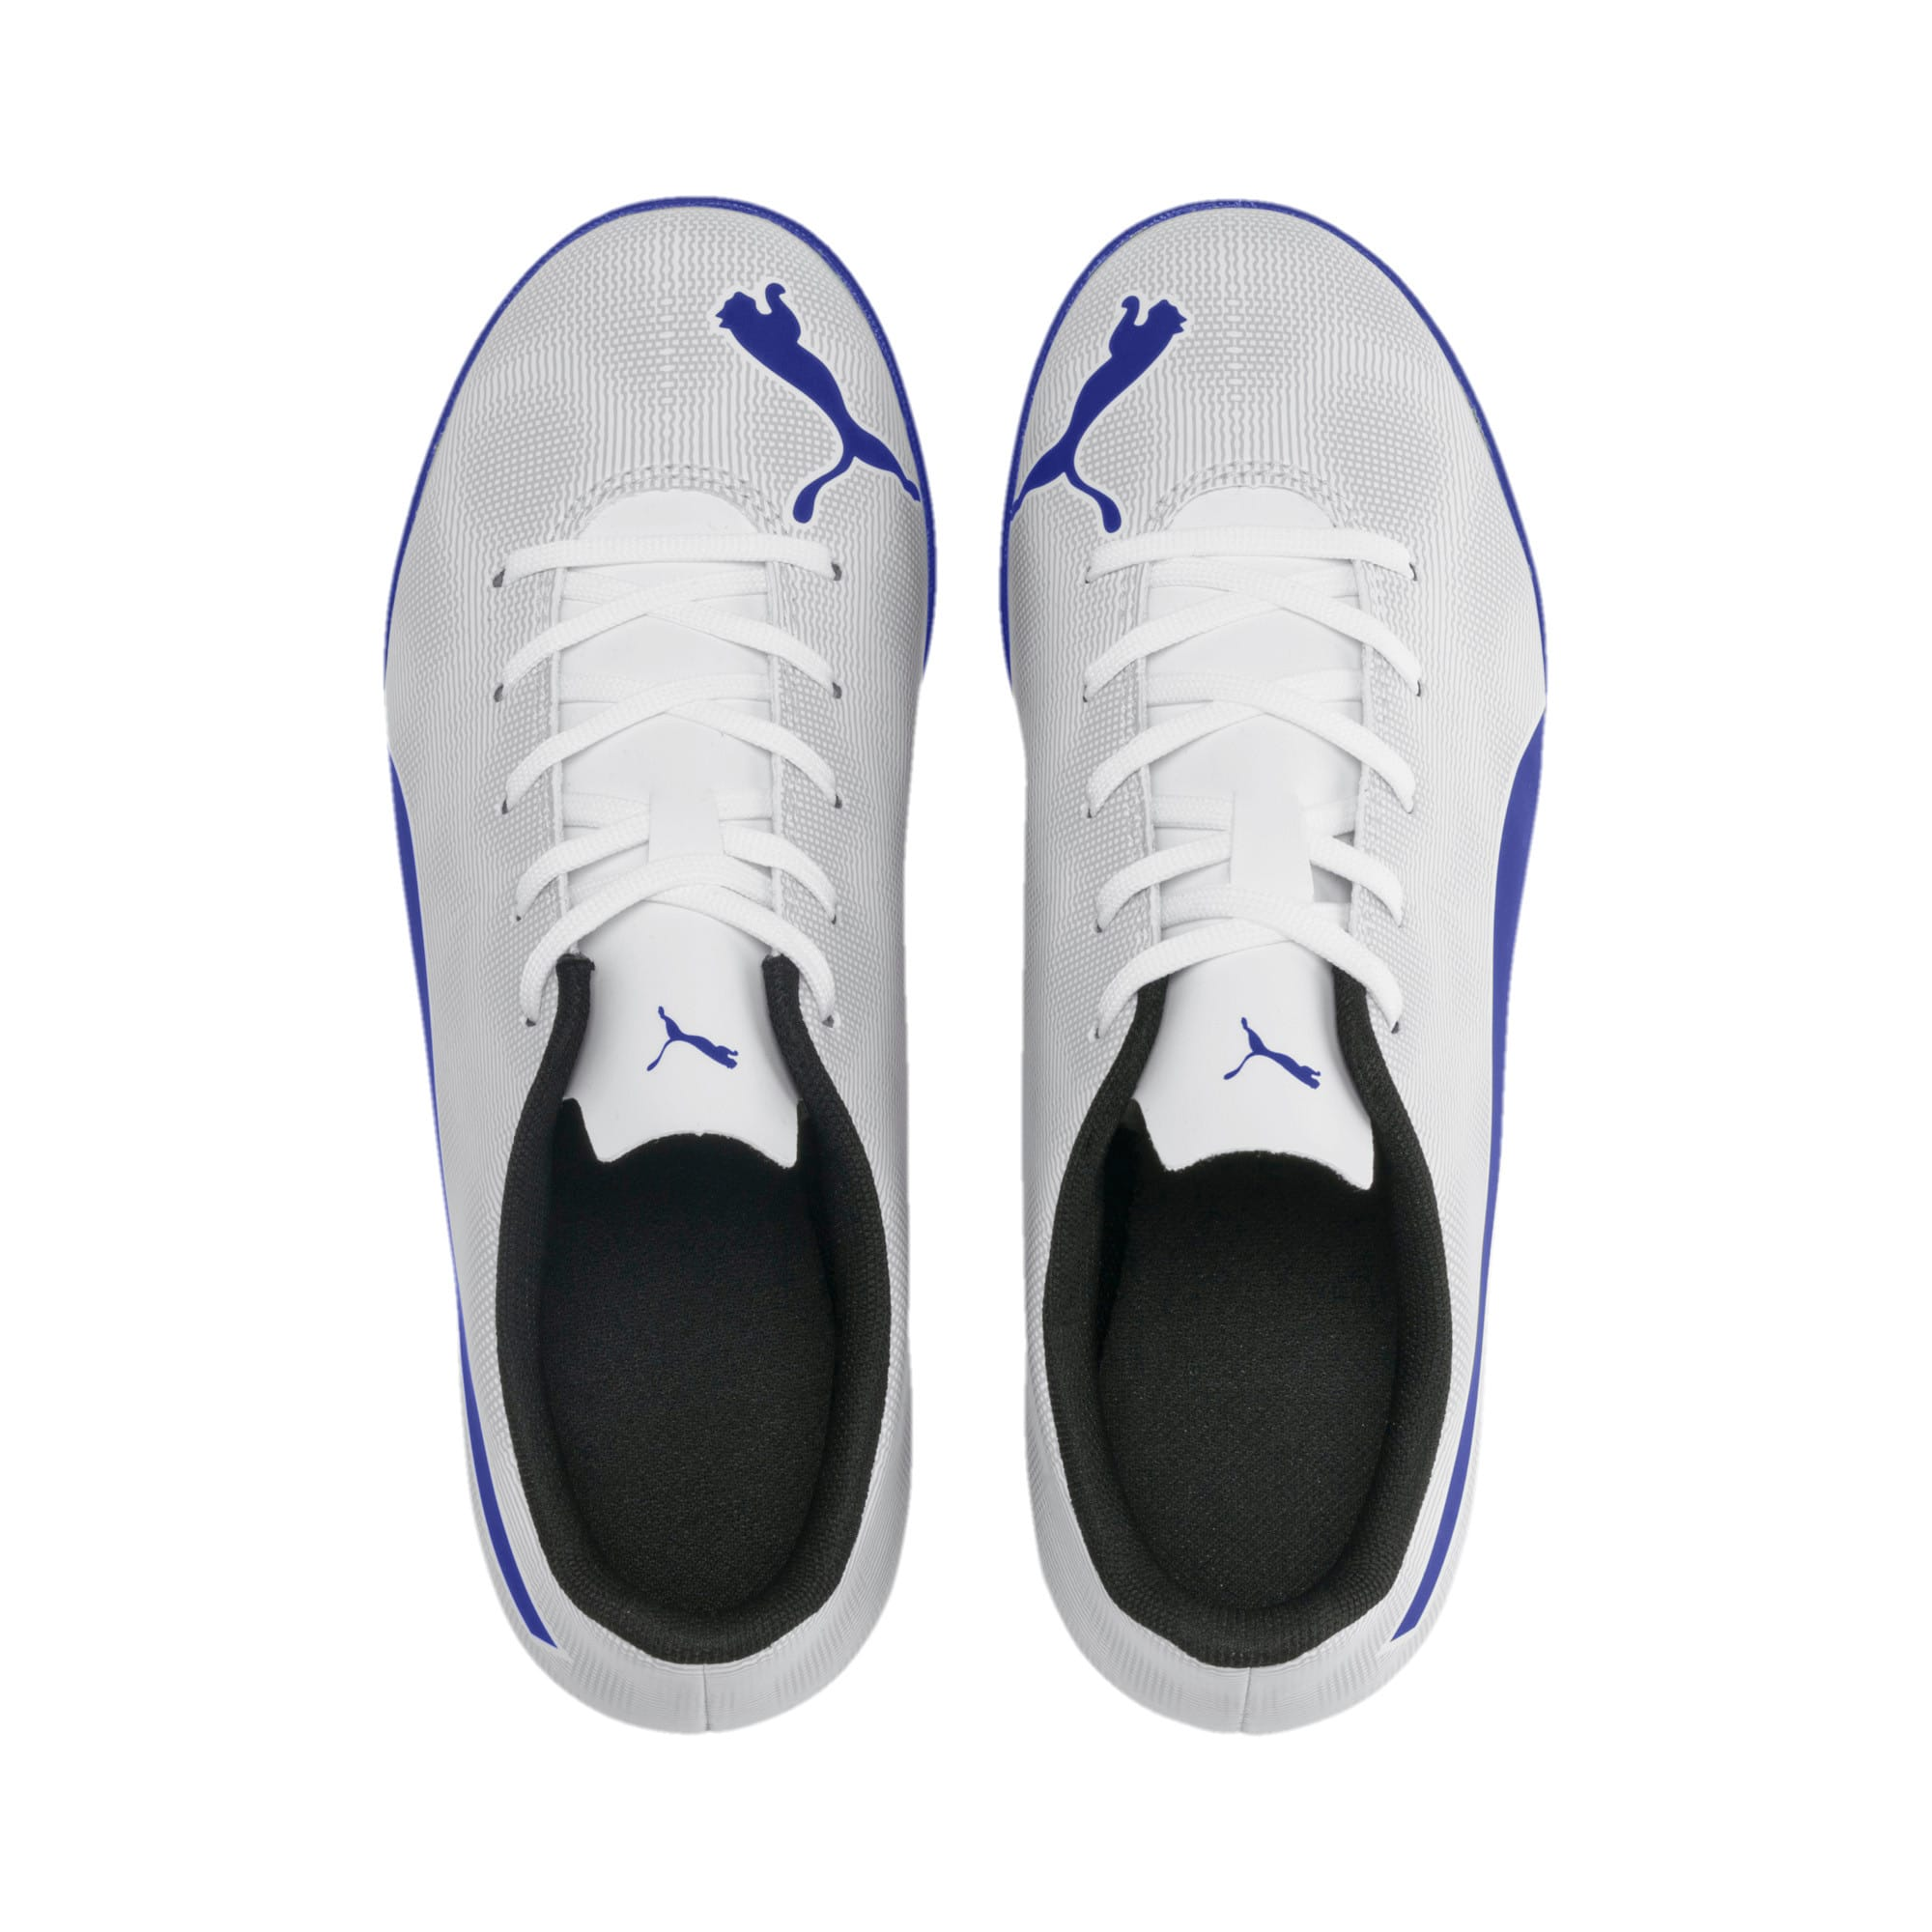 Thumbnail 2 of Rapido IT Youth Football Boots, White-Royal Blue-Light Gray, medium-IND